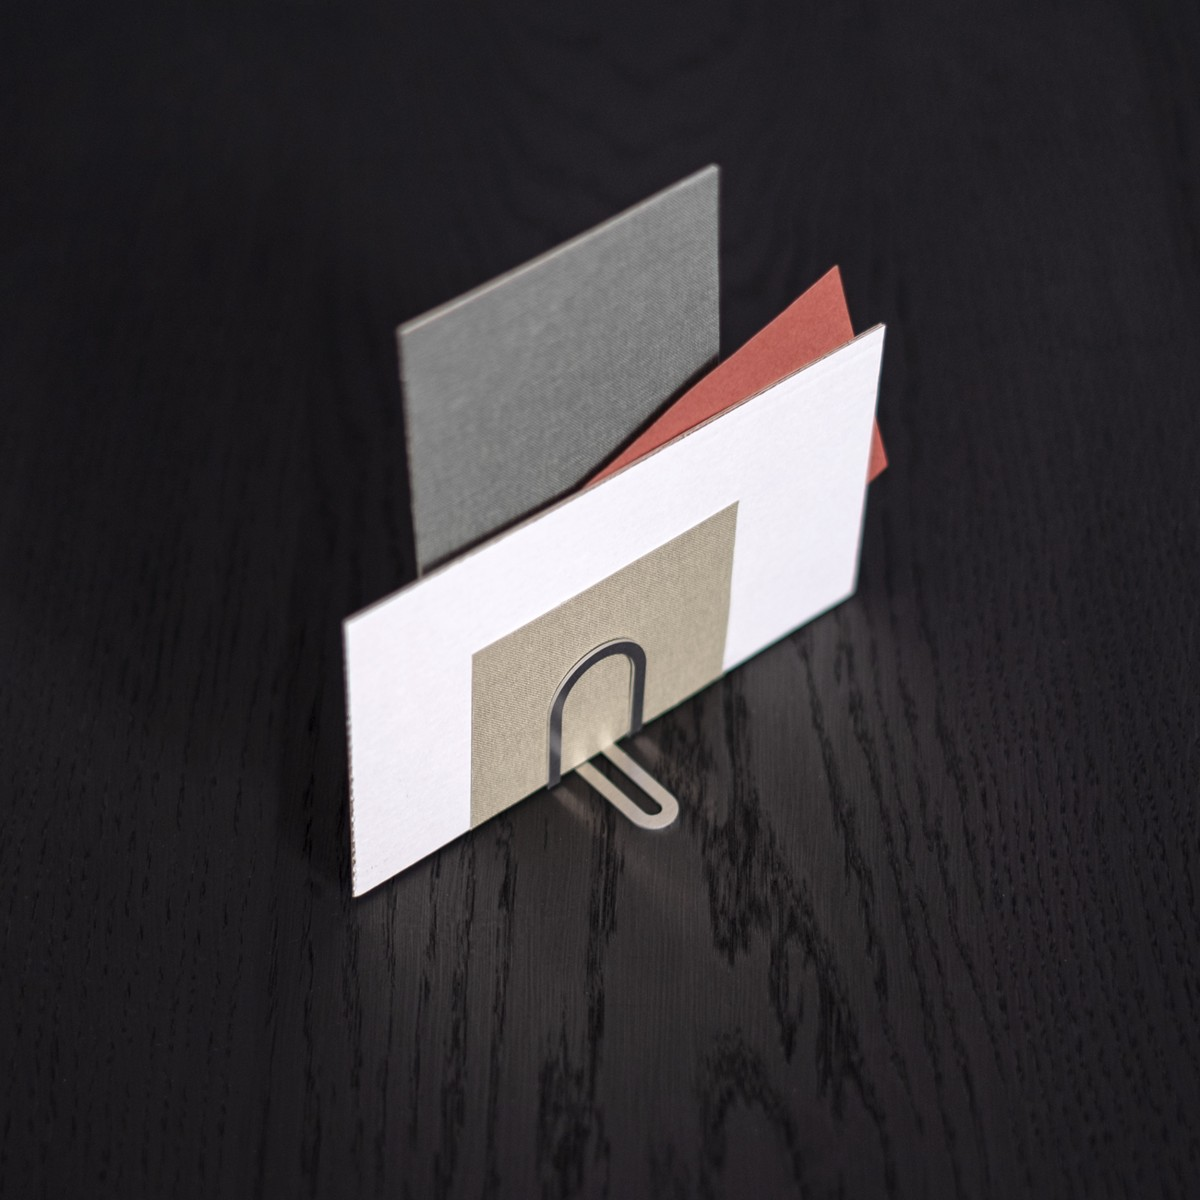 FOLD Briefhalter | Result Objects